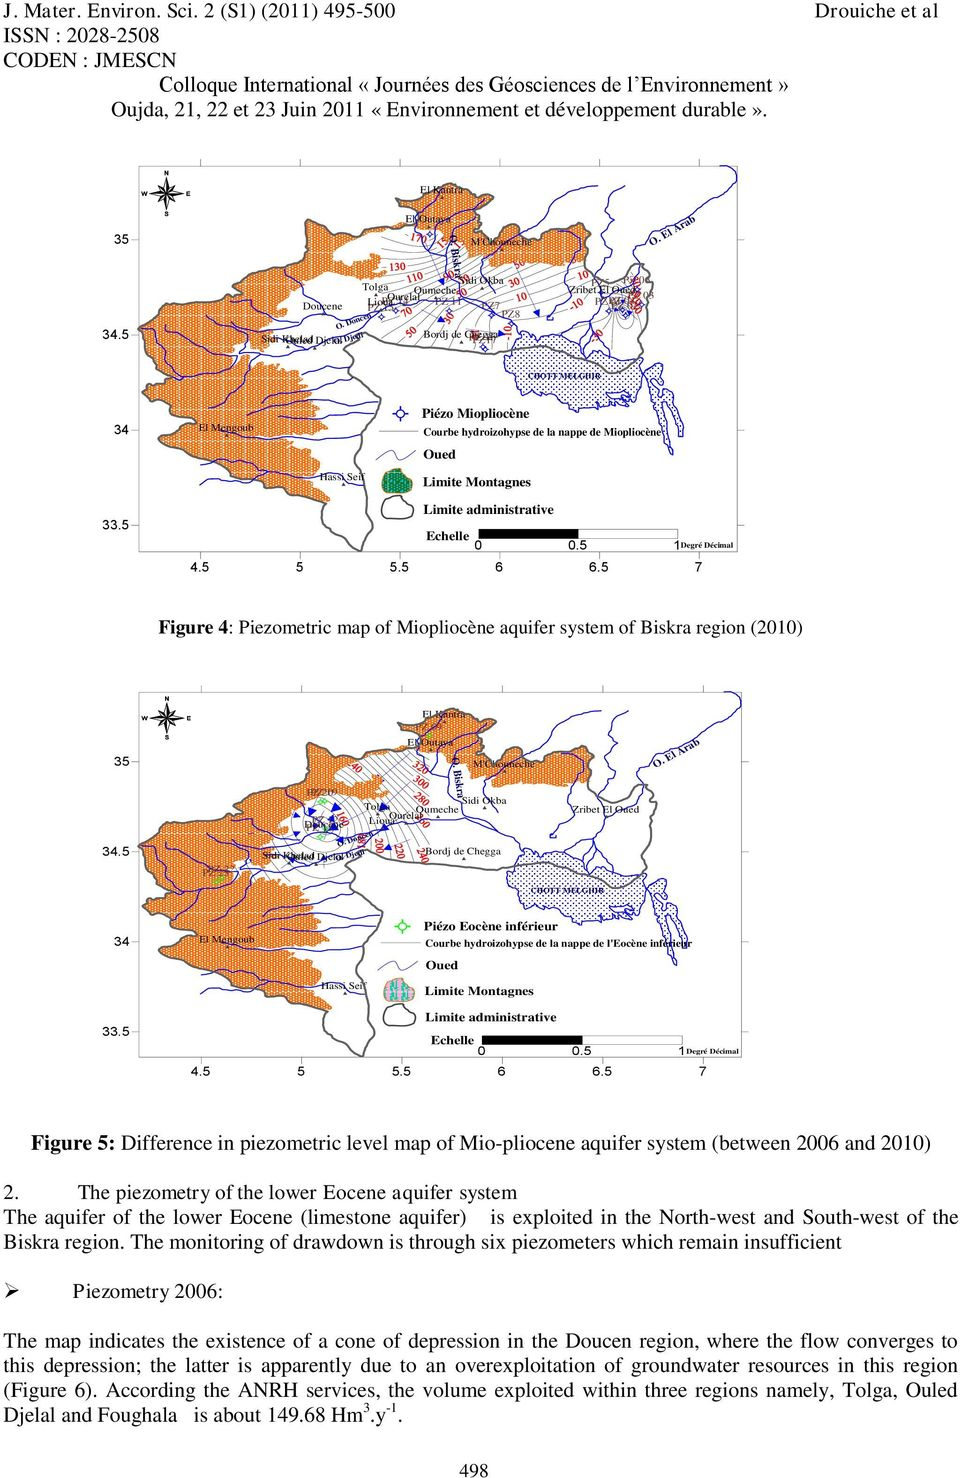 nappe de l'eocène inférieur Figure 5: Difference in piezometric level map of Mio-pliocene aquifer system (between 2006 and 2010) 2.